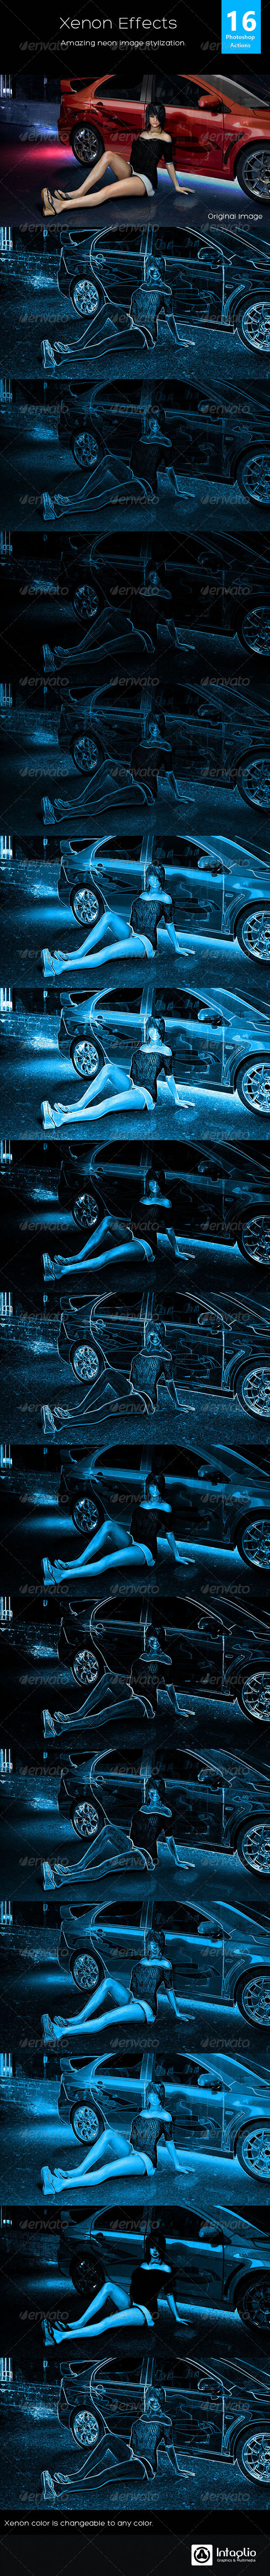 GraphicRiver Xenon Effects 2664243